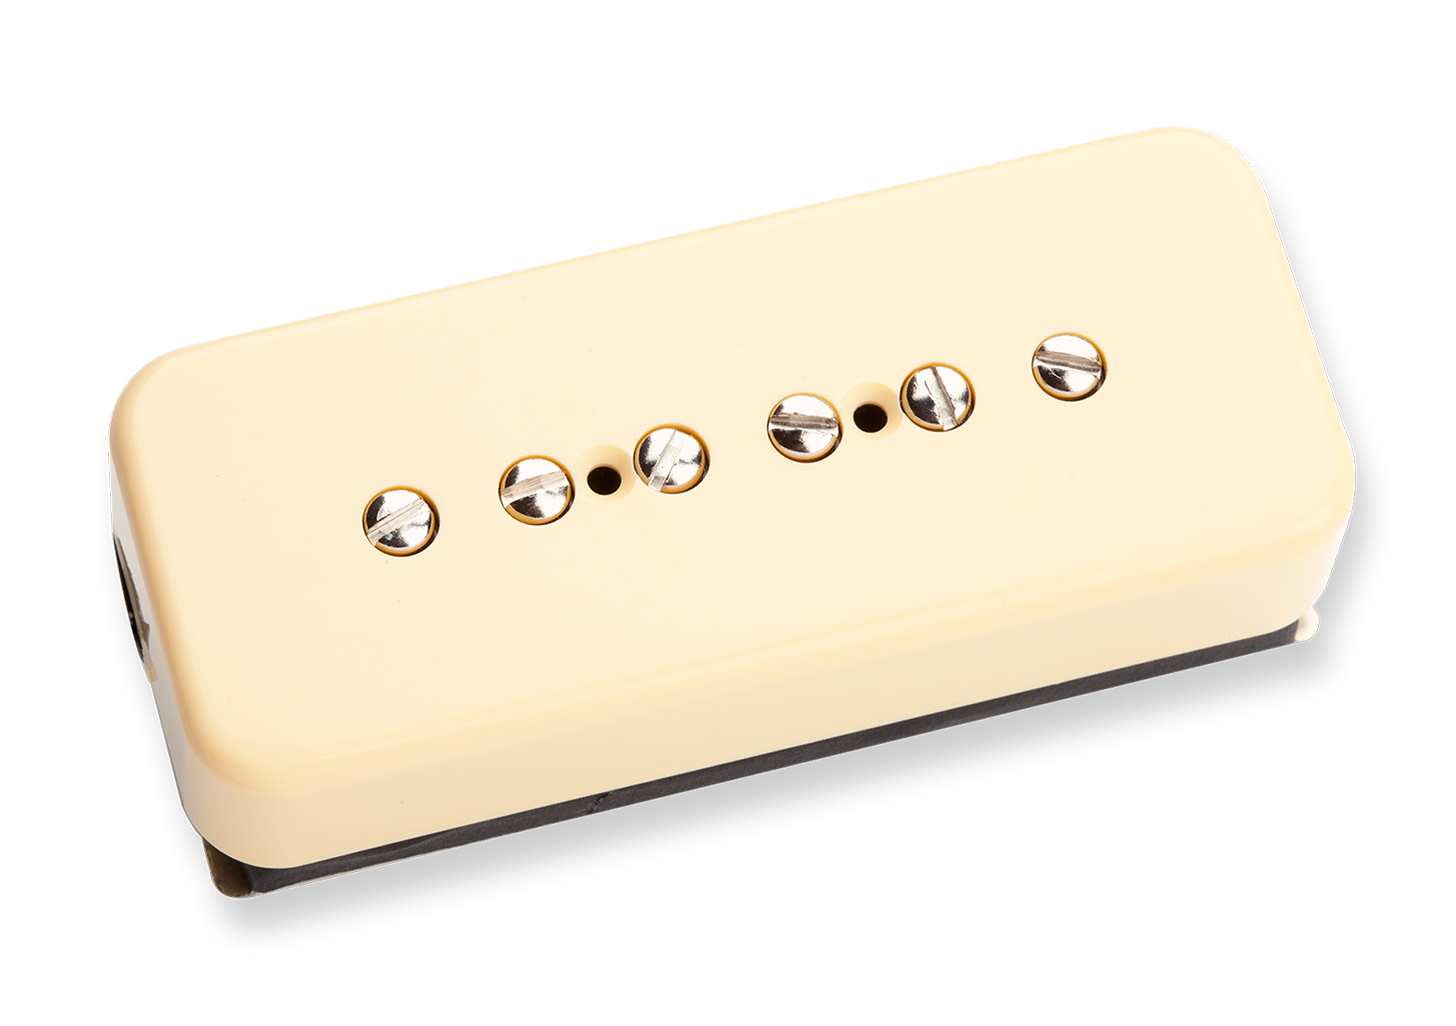 Seymour Duncan P90 Stack STK-P1B Bridge Cream